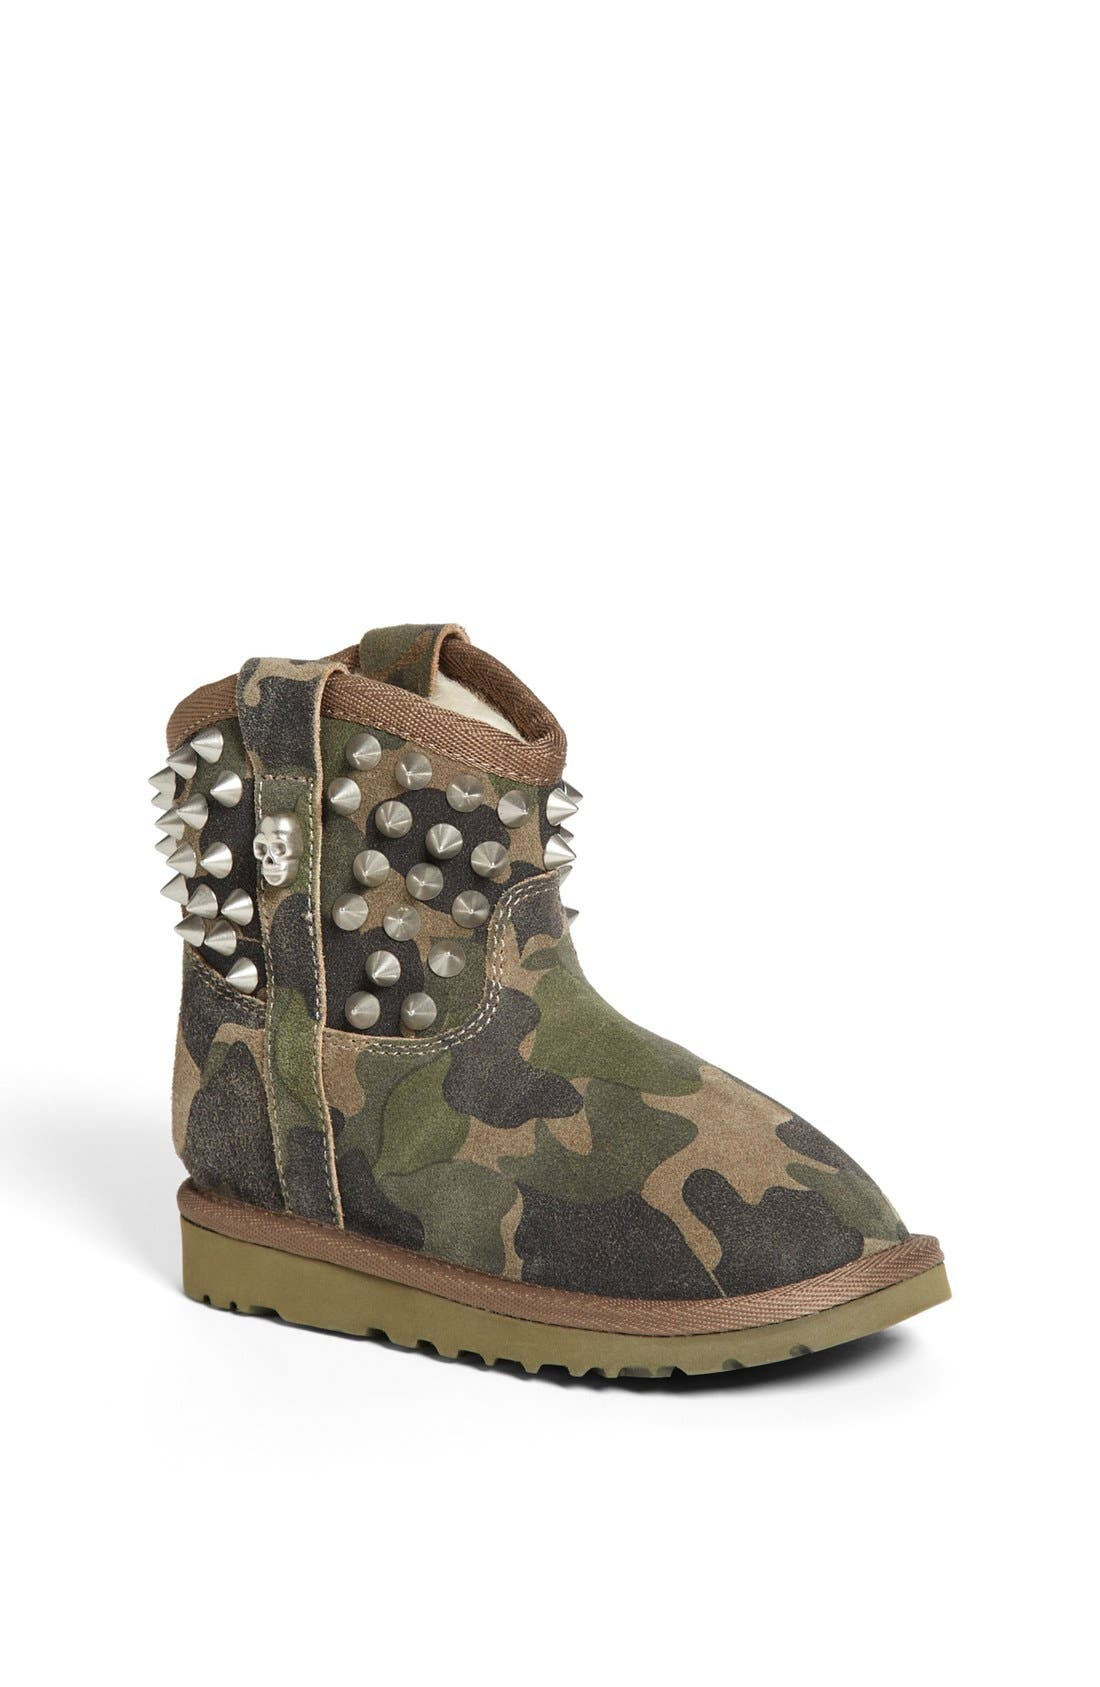 Alternate Image 1 Selected - Ash 'You' Studded Camo Boot (Toddler, Little Kid & Big Kid)